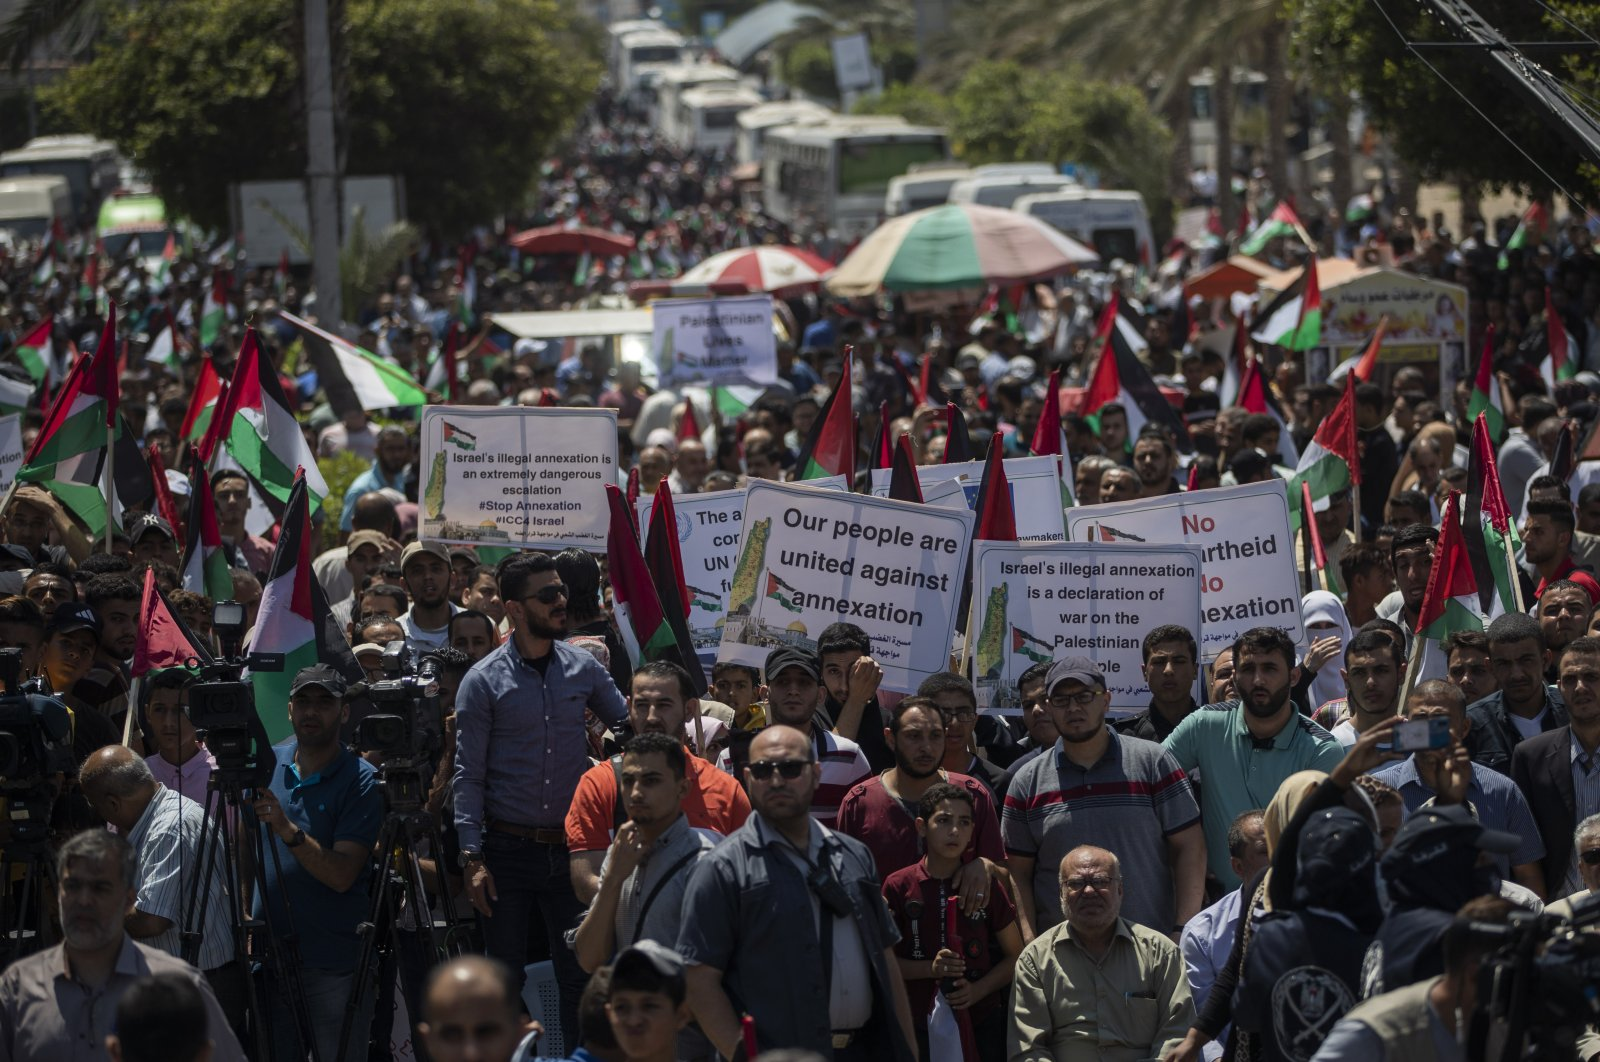 Palestinians demonstrate against Israeli plans for the annexation of parts of the occupied West Bank, Gaza City, July 1, 2020. (AP Photo)